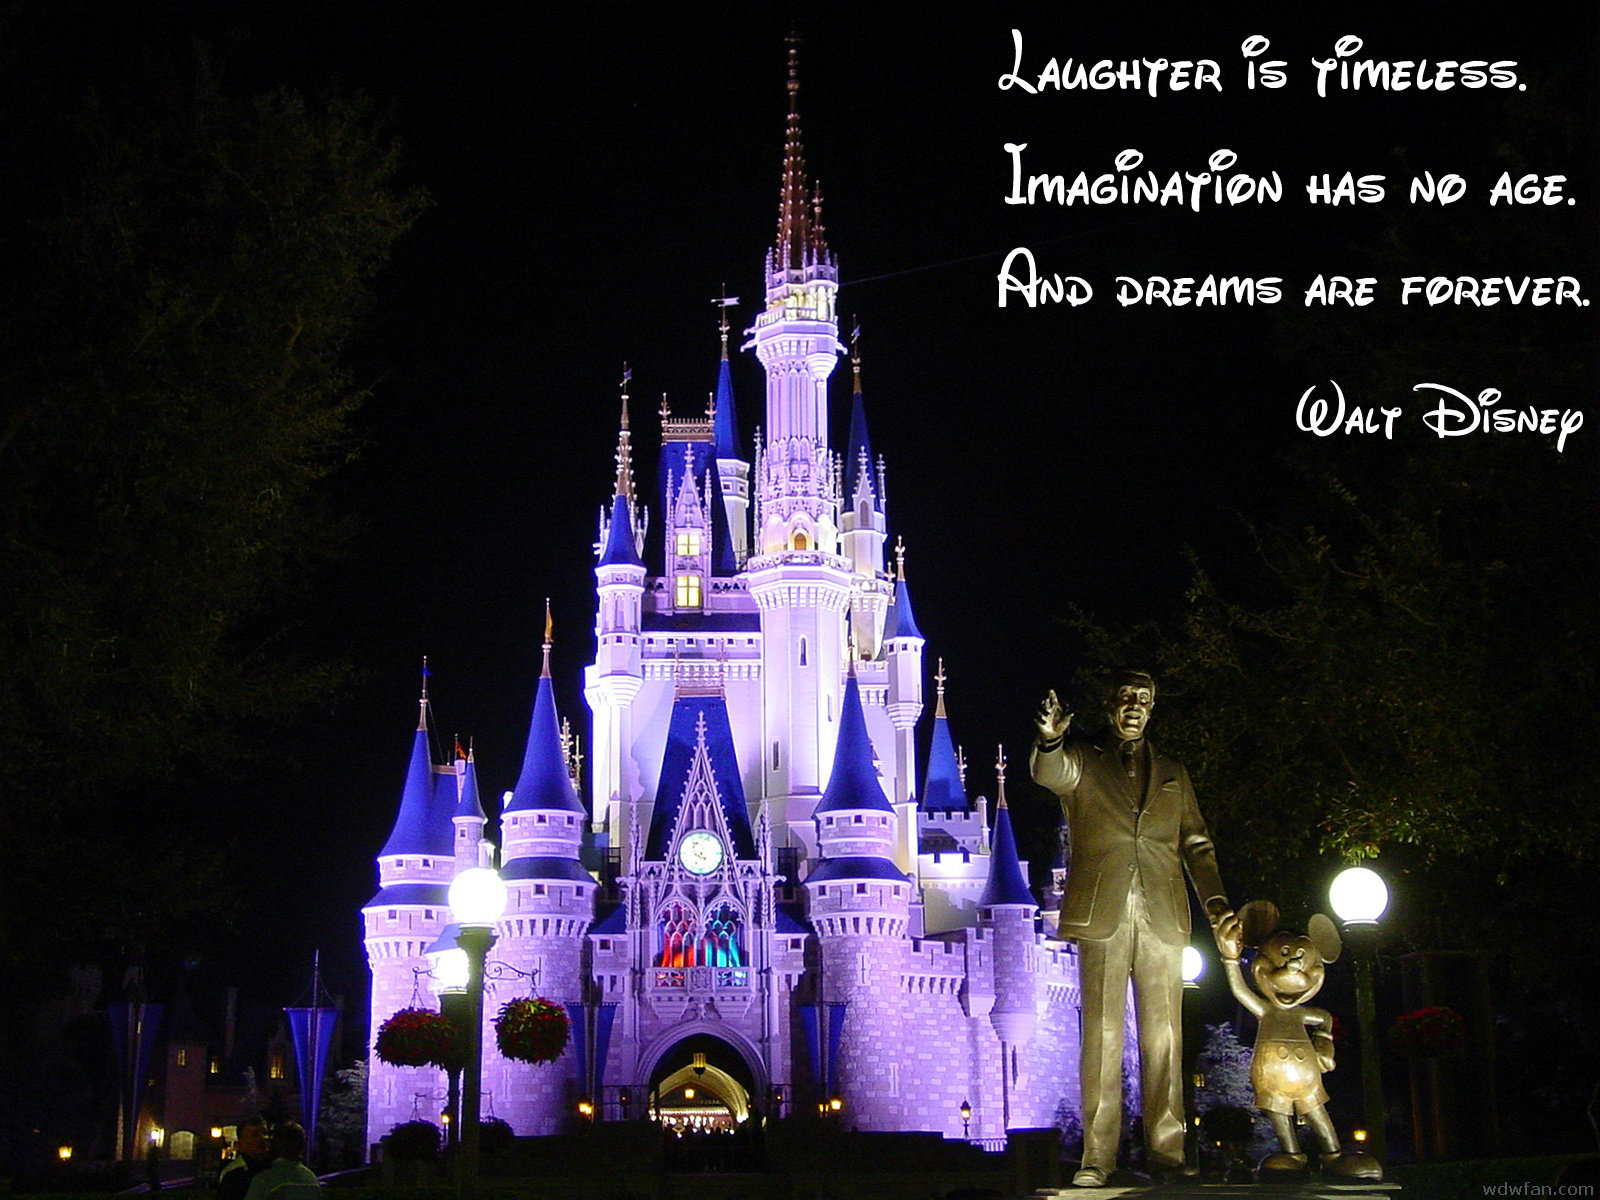 Cute Together Forever Wallpaper Life With 4 Boys A Little Bit Of Disney Wisdom